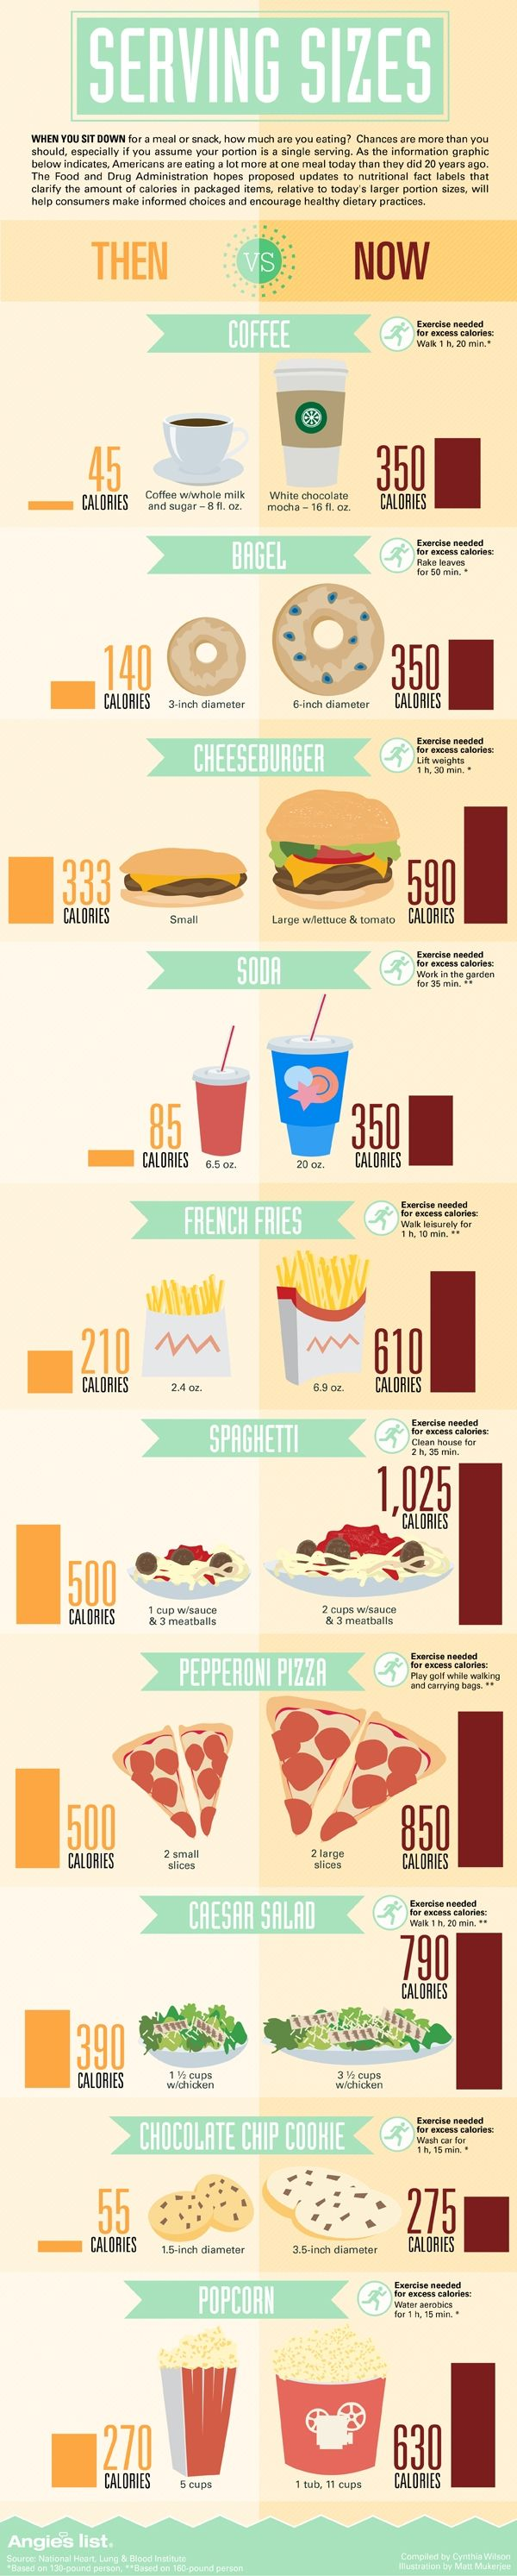 Infograph about the difference between serving sizes today and 20 years ago.